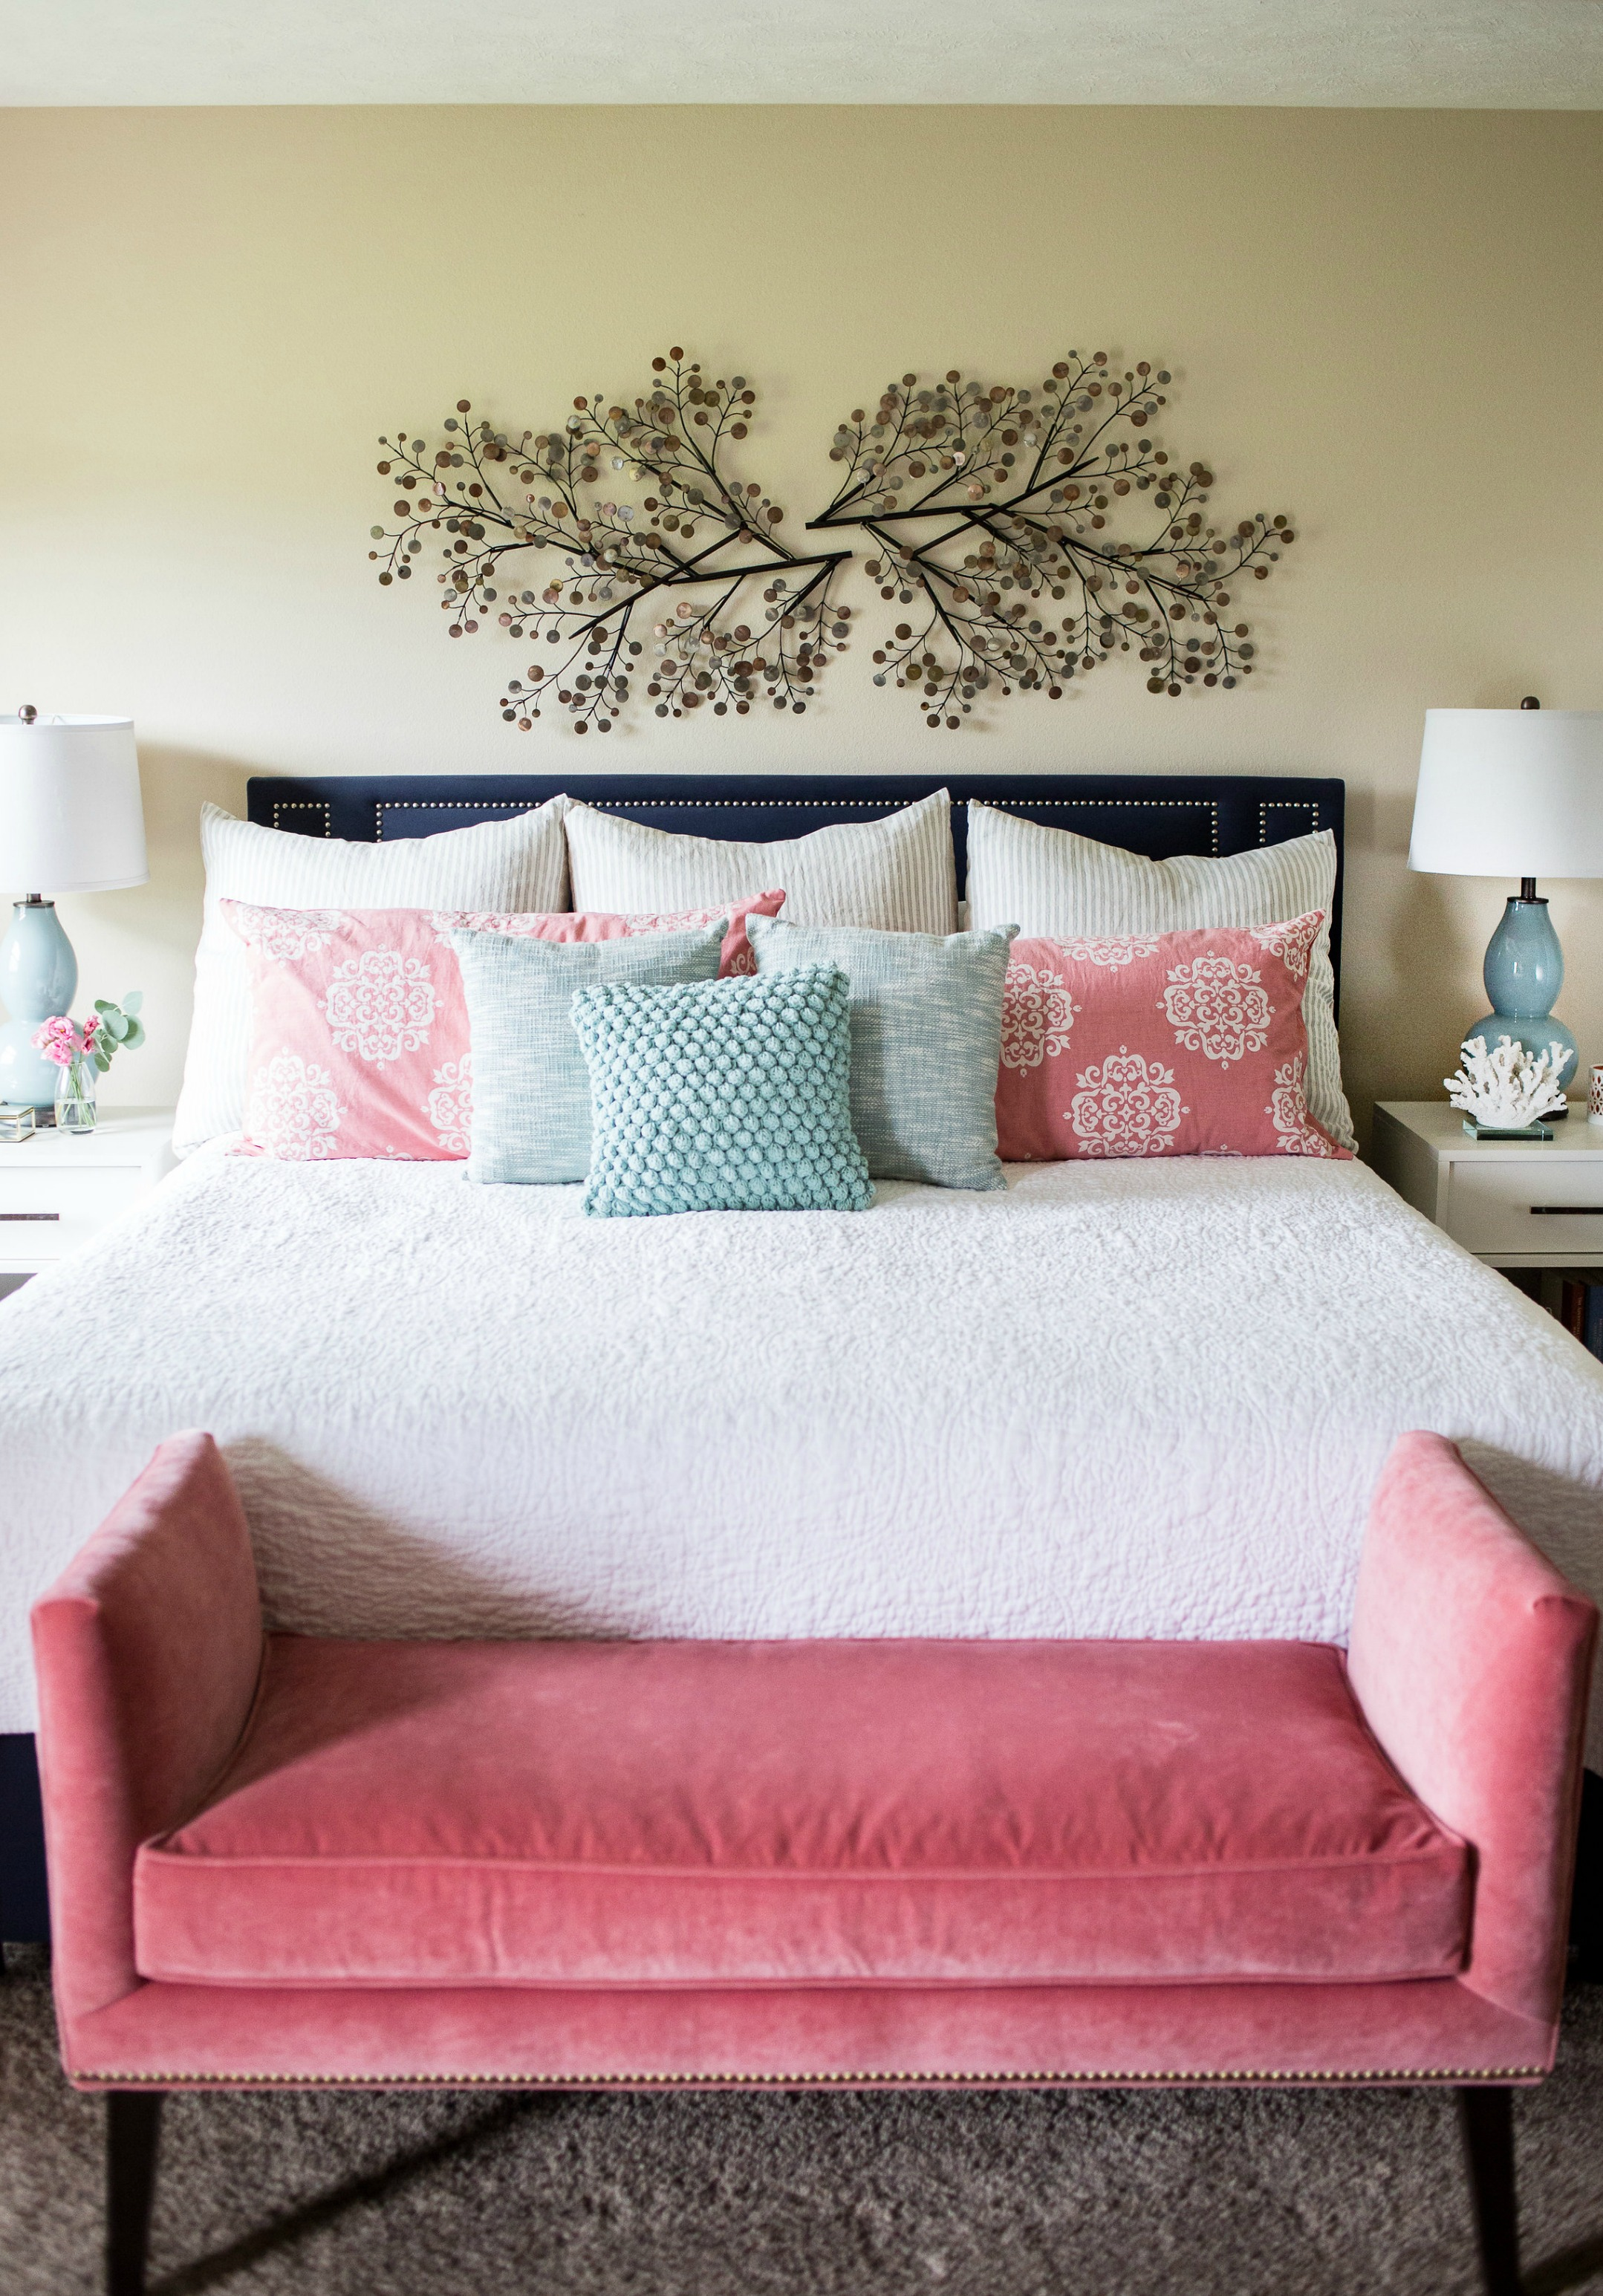 4 Tips To A More Relaxing Bedroom